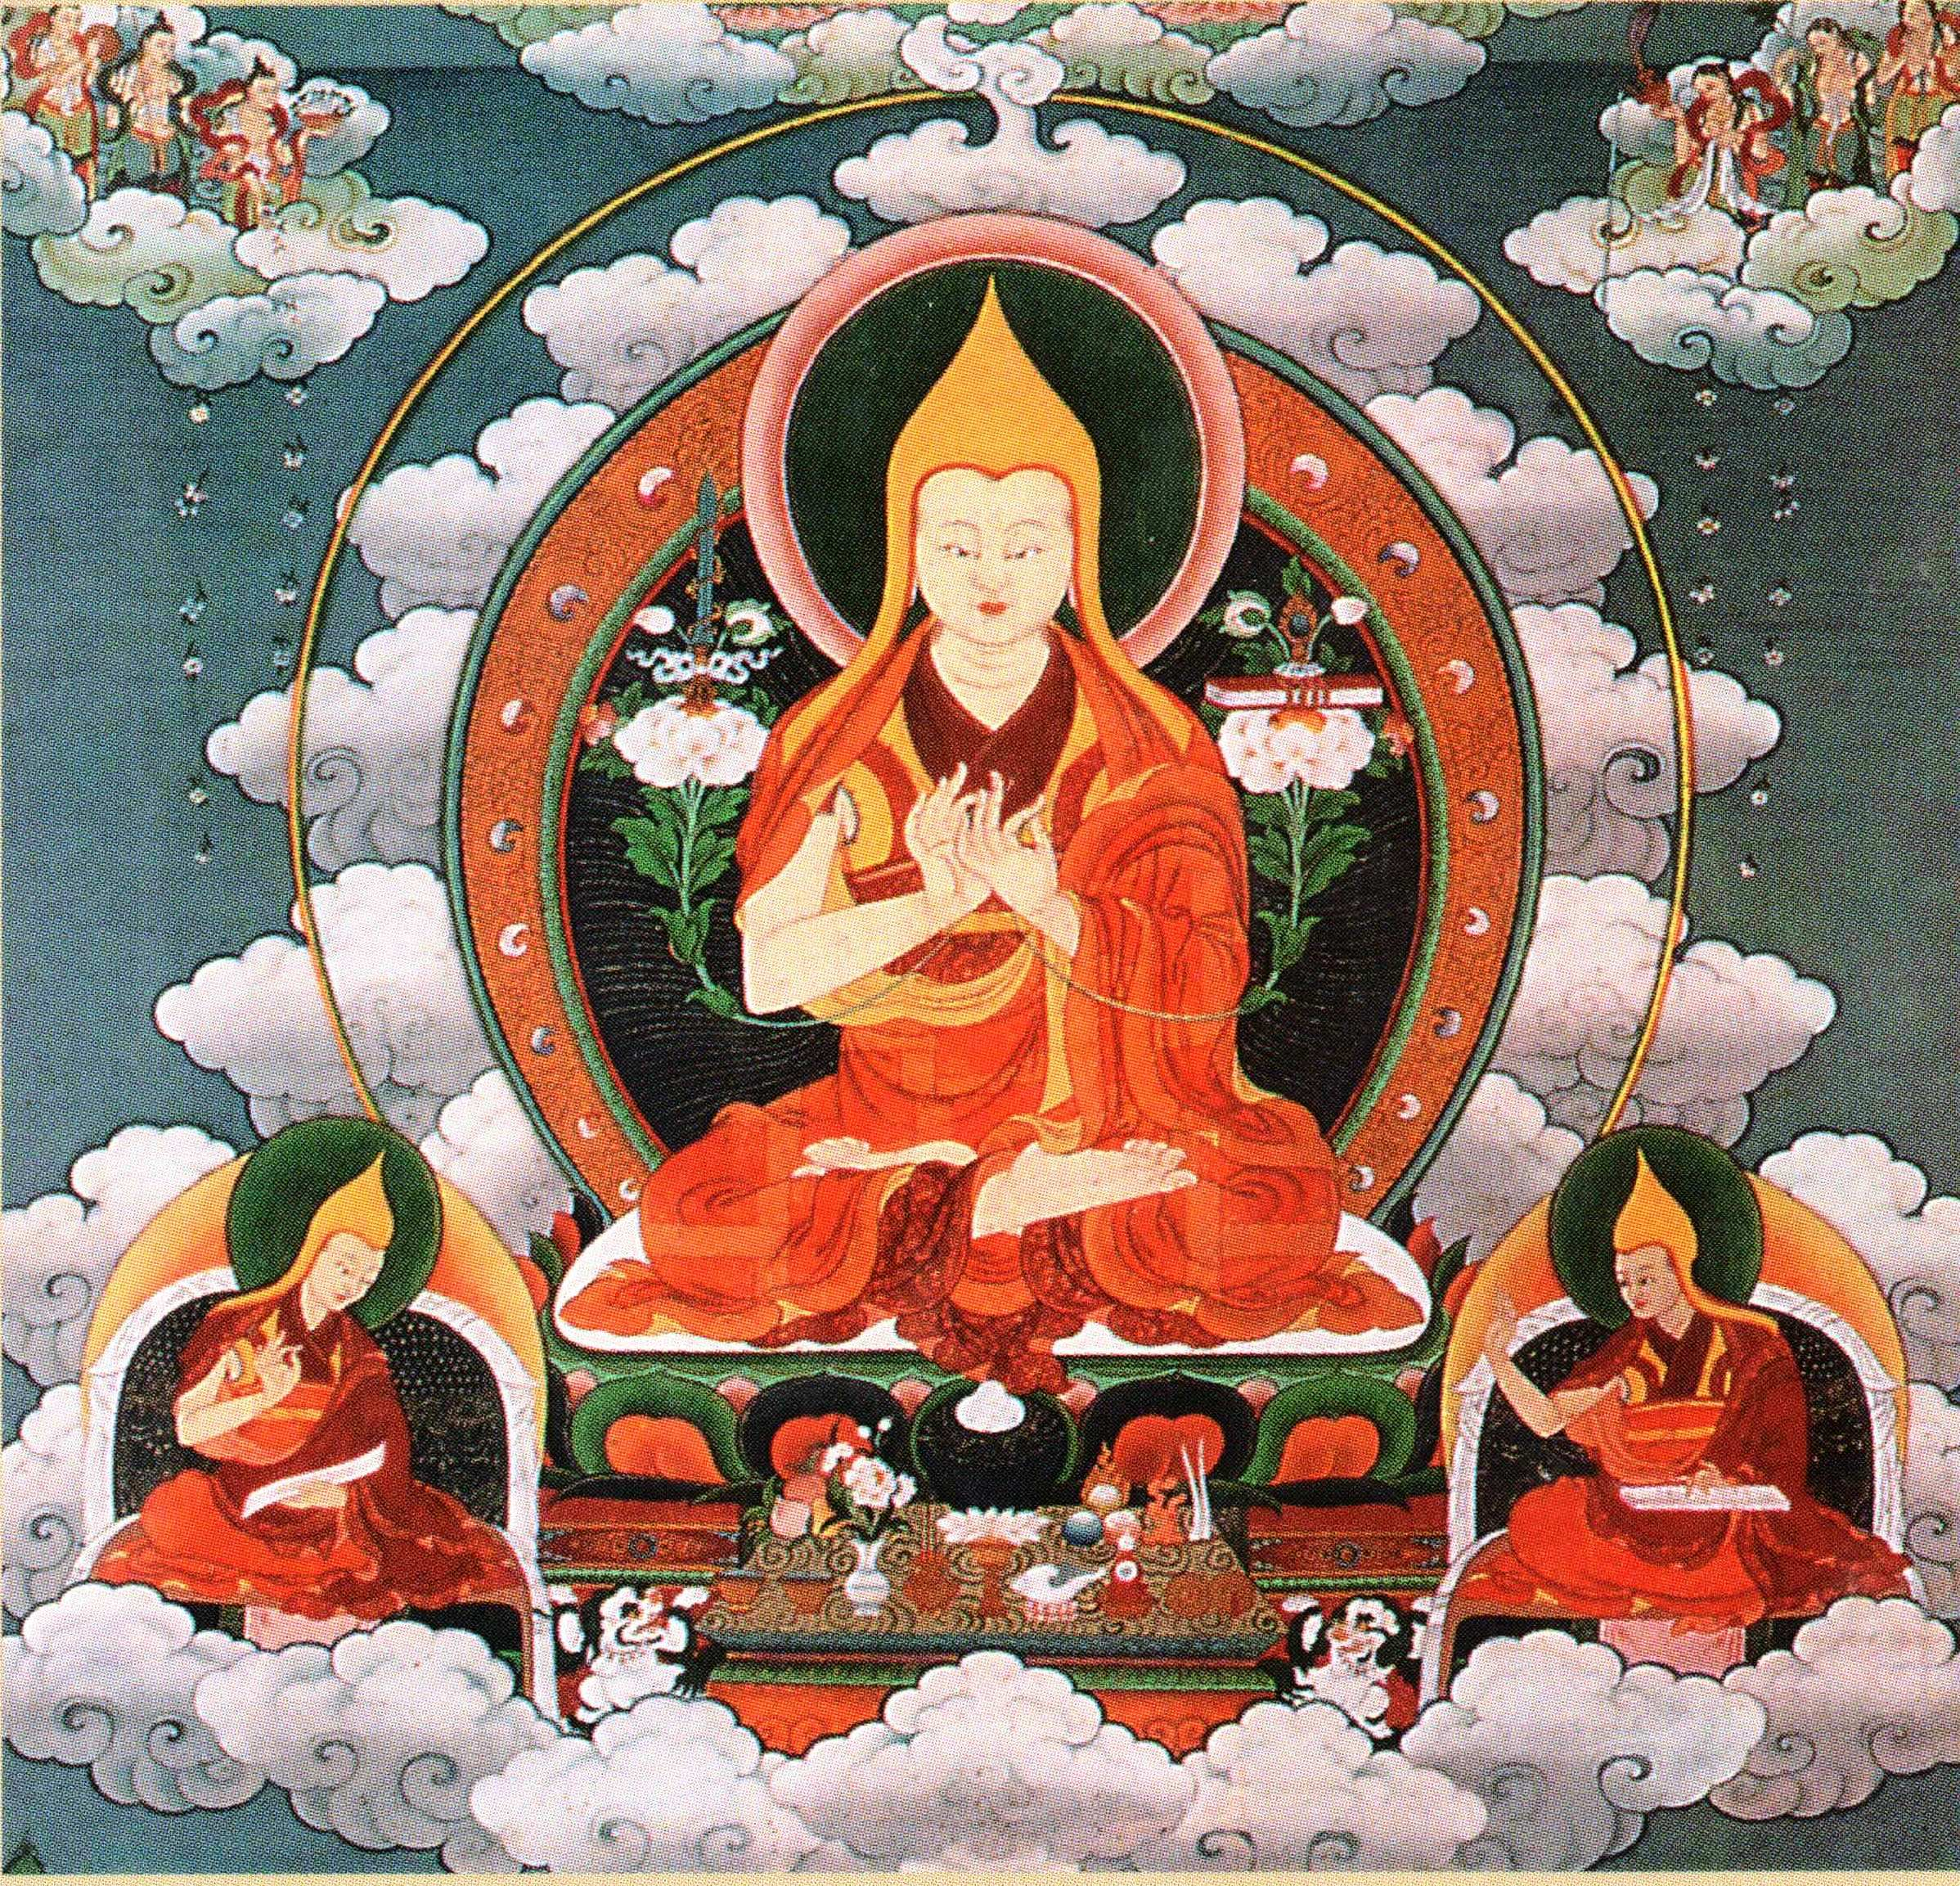 compassion in mahayana buddhism Mahāyāna buddhist philosophy such as the bodhisattva ideal, and suffering important principles of mahäyana buddhism as they relate to compassion.